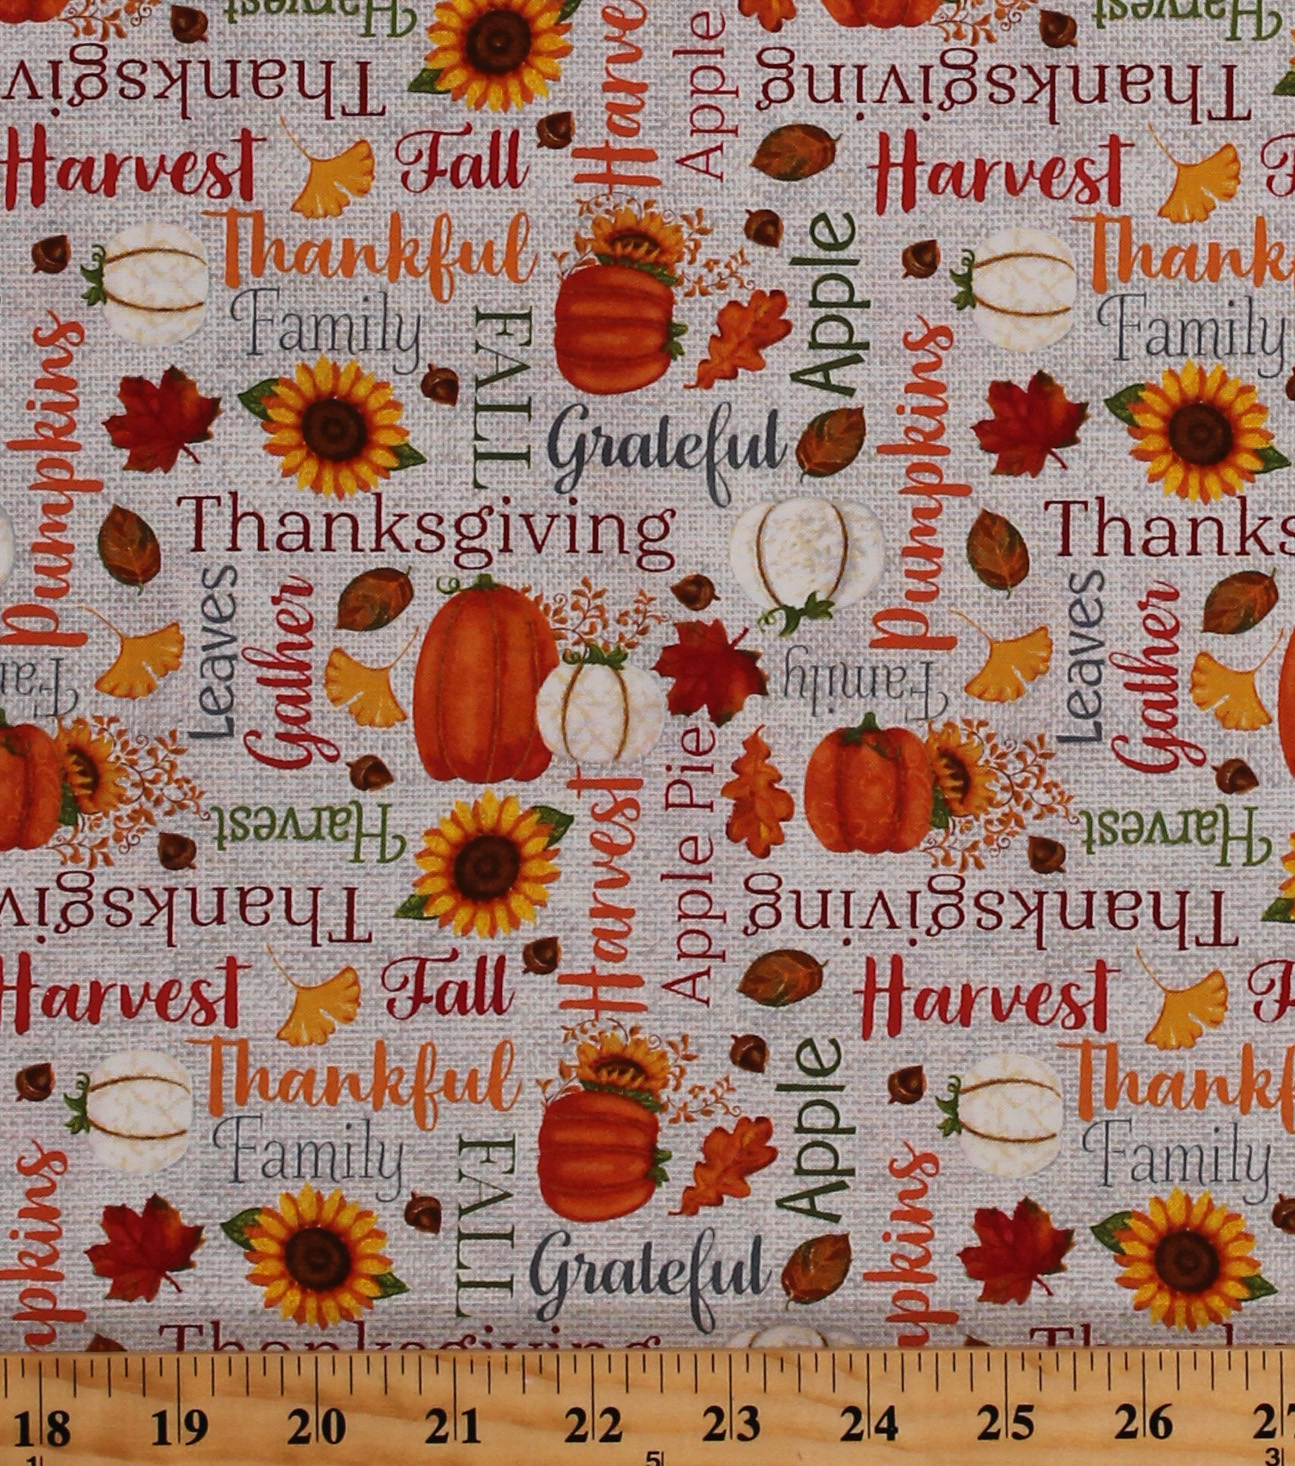 Orange 39 Cotton Autumn Fall Thanksgiving Quotes Pumpkins Sunflowers Leaves Harvest Orange Thankful And Blessed Fabric Print By The Yard A4664 39